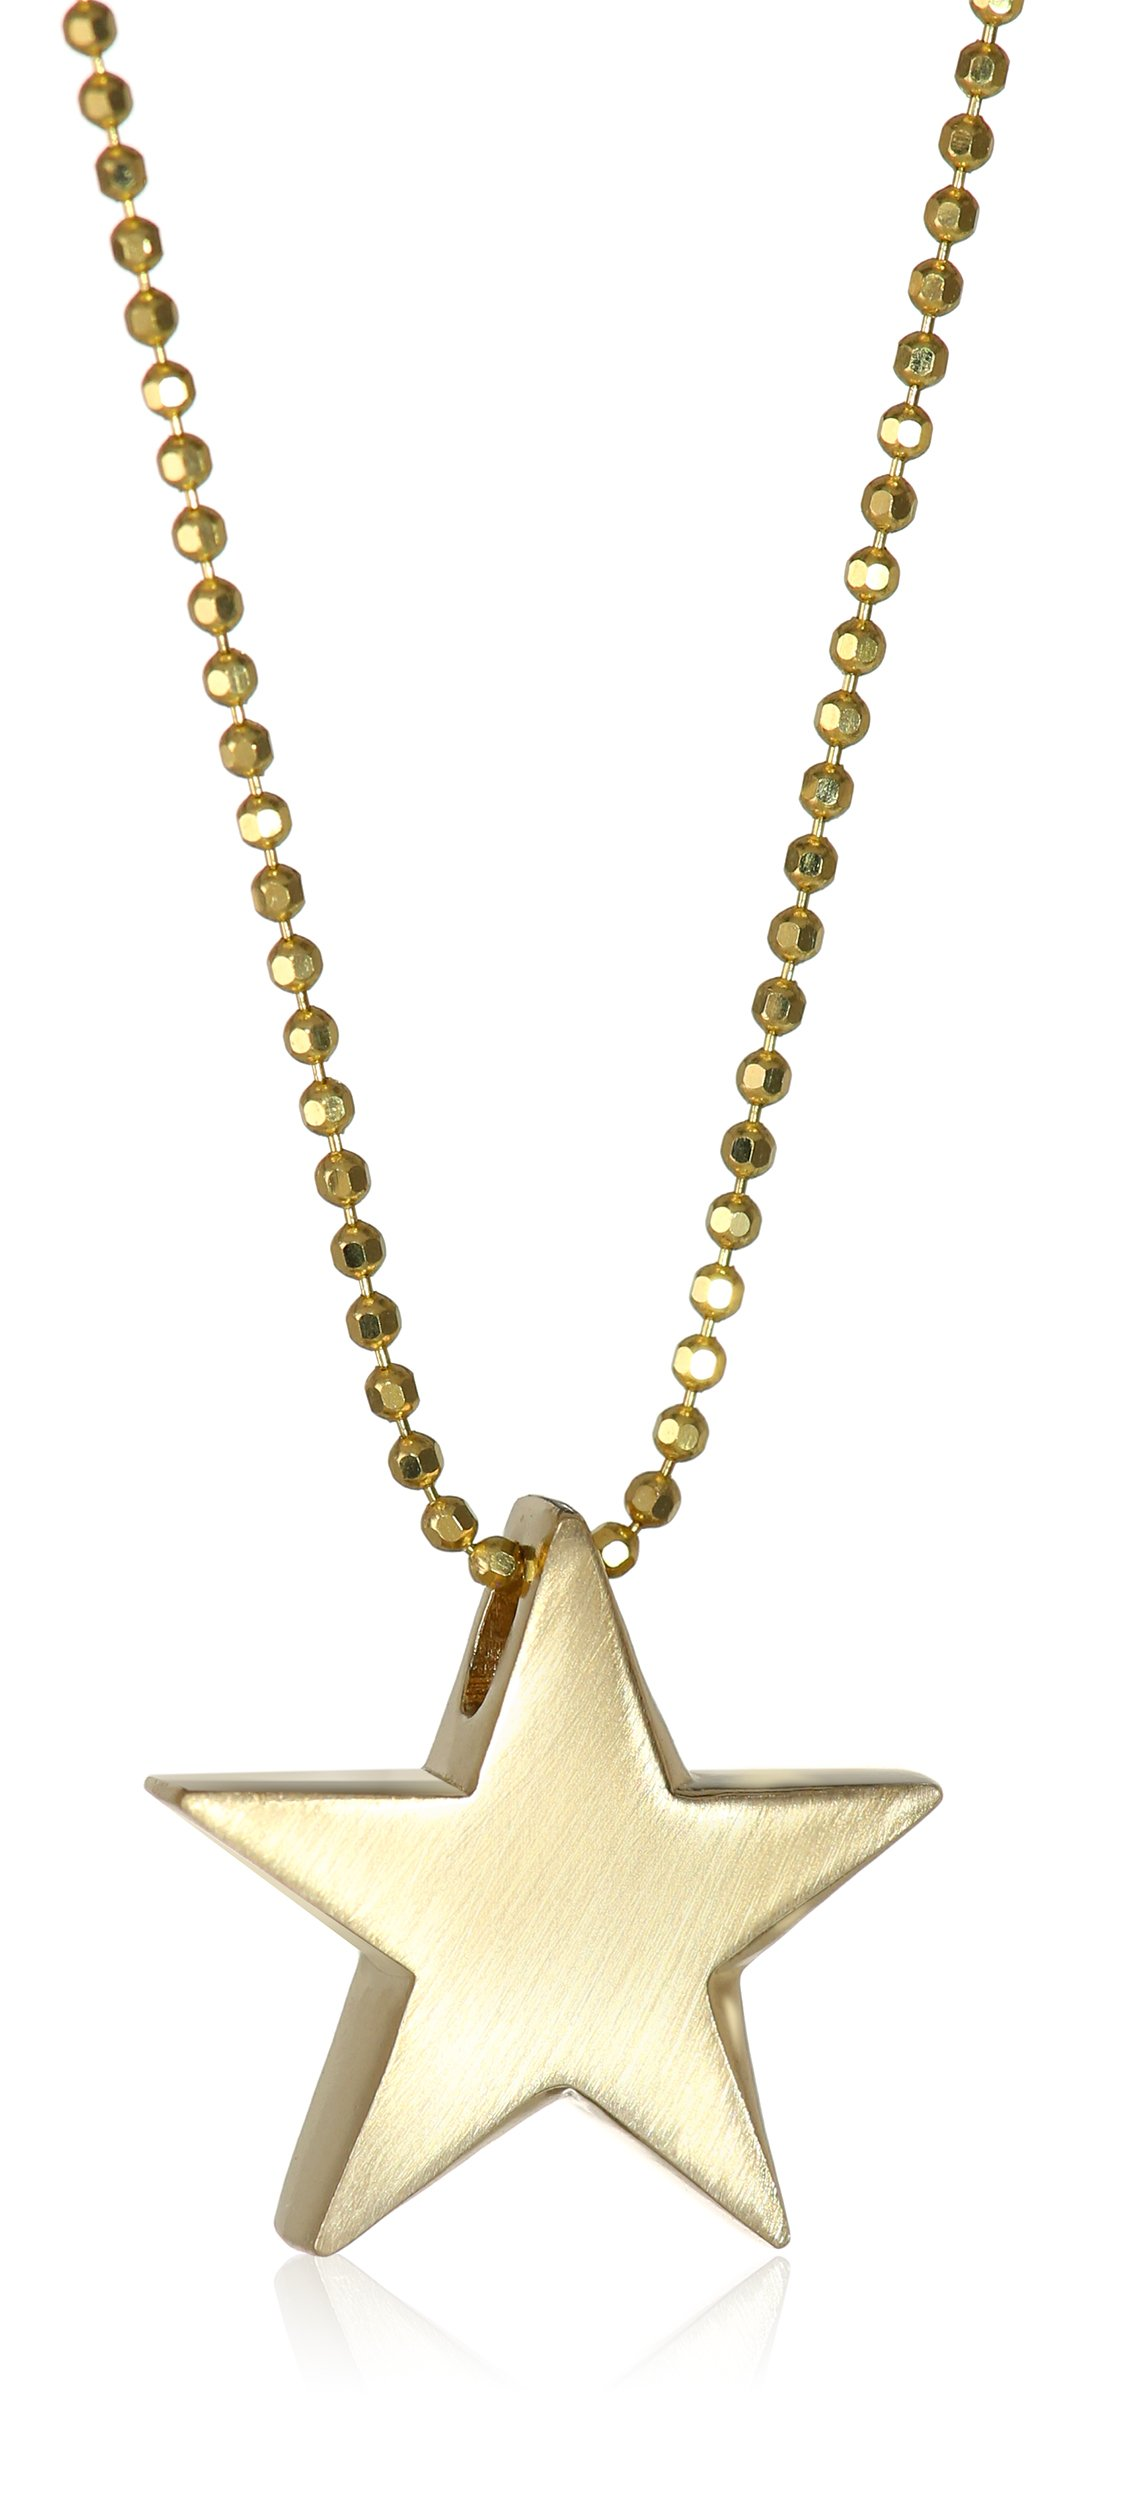 Alex Woo ''Little Princess'' 14k Yellow Gold Star Pendant Necklace, 16'' by Alex Woo